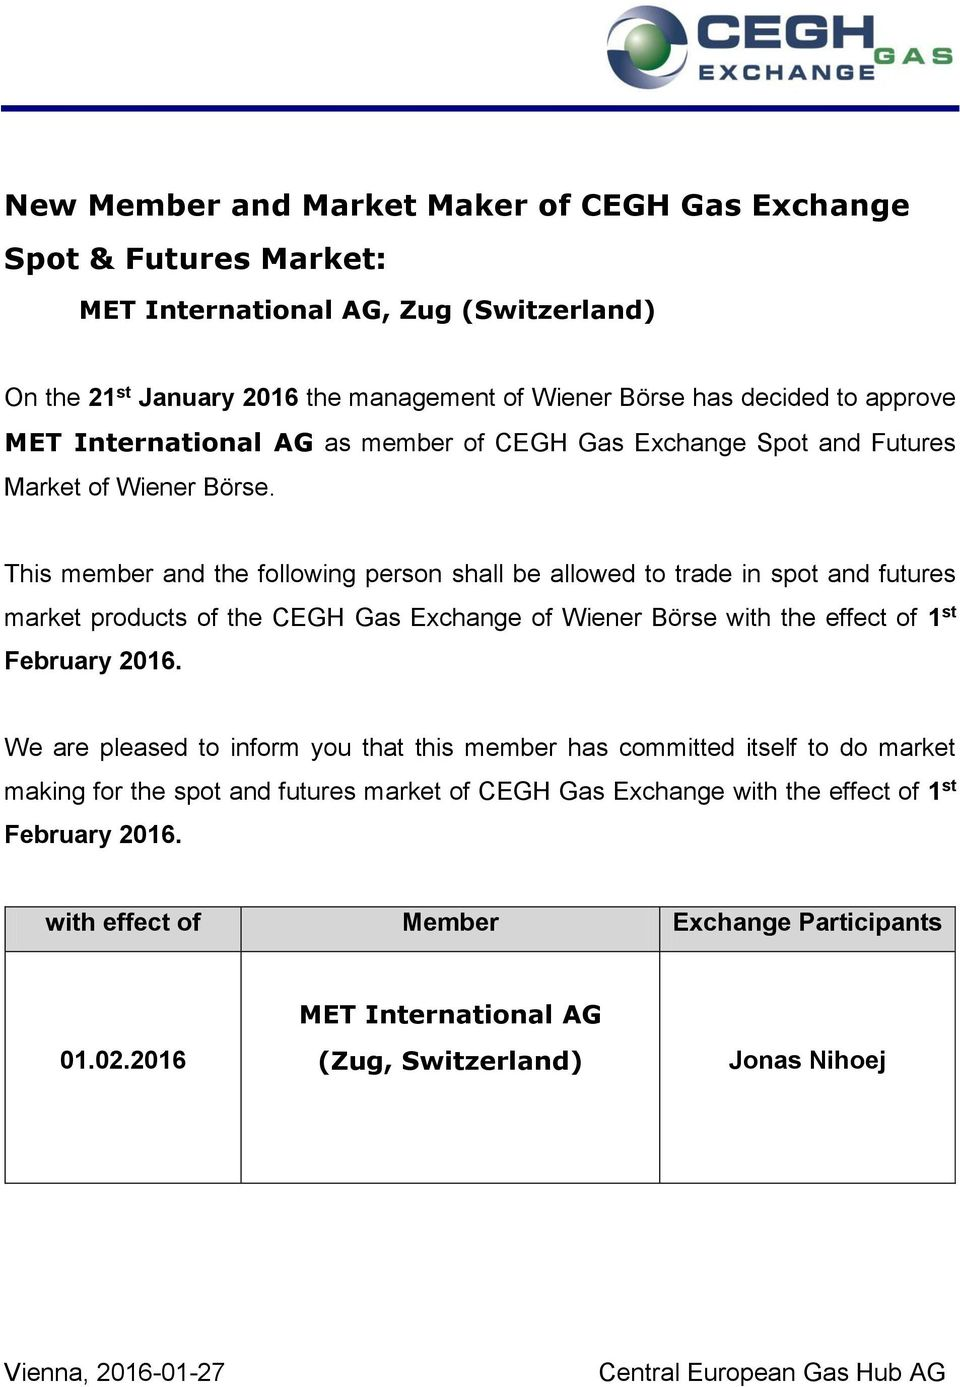 This member and the following person shall be allowed to trade in spot and futures market products of the CEGH Gas Exchange of Wiener Börse with the effect of 1 st February 2016.